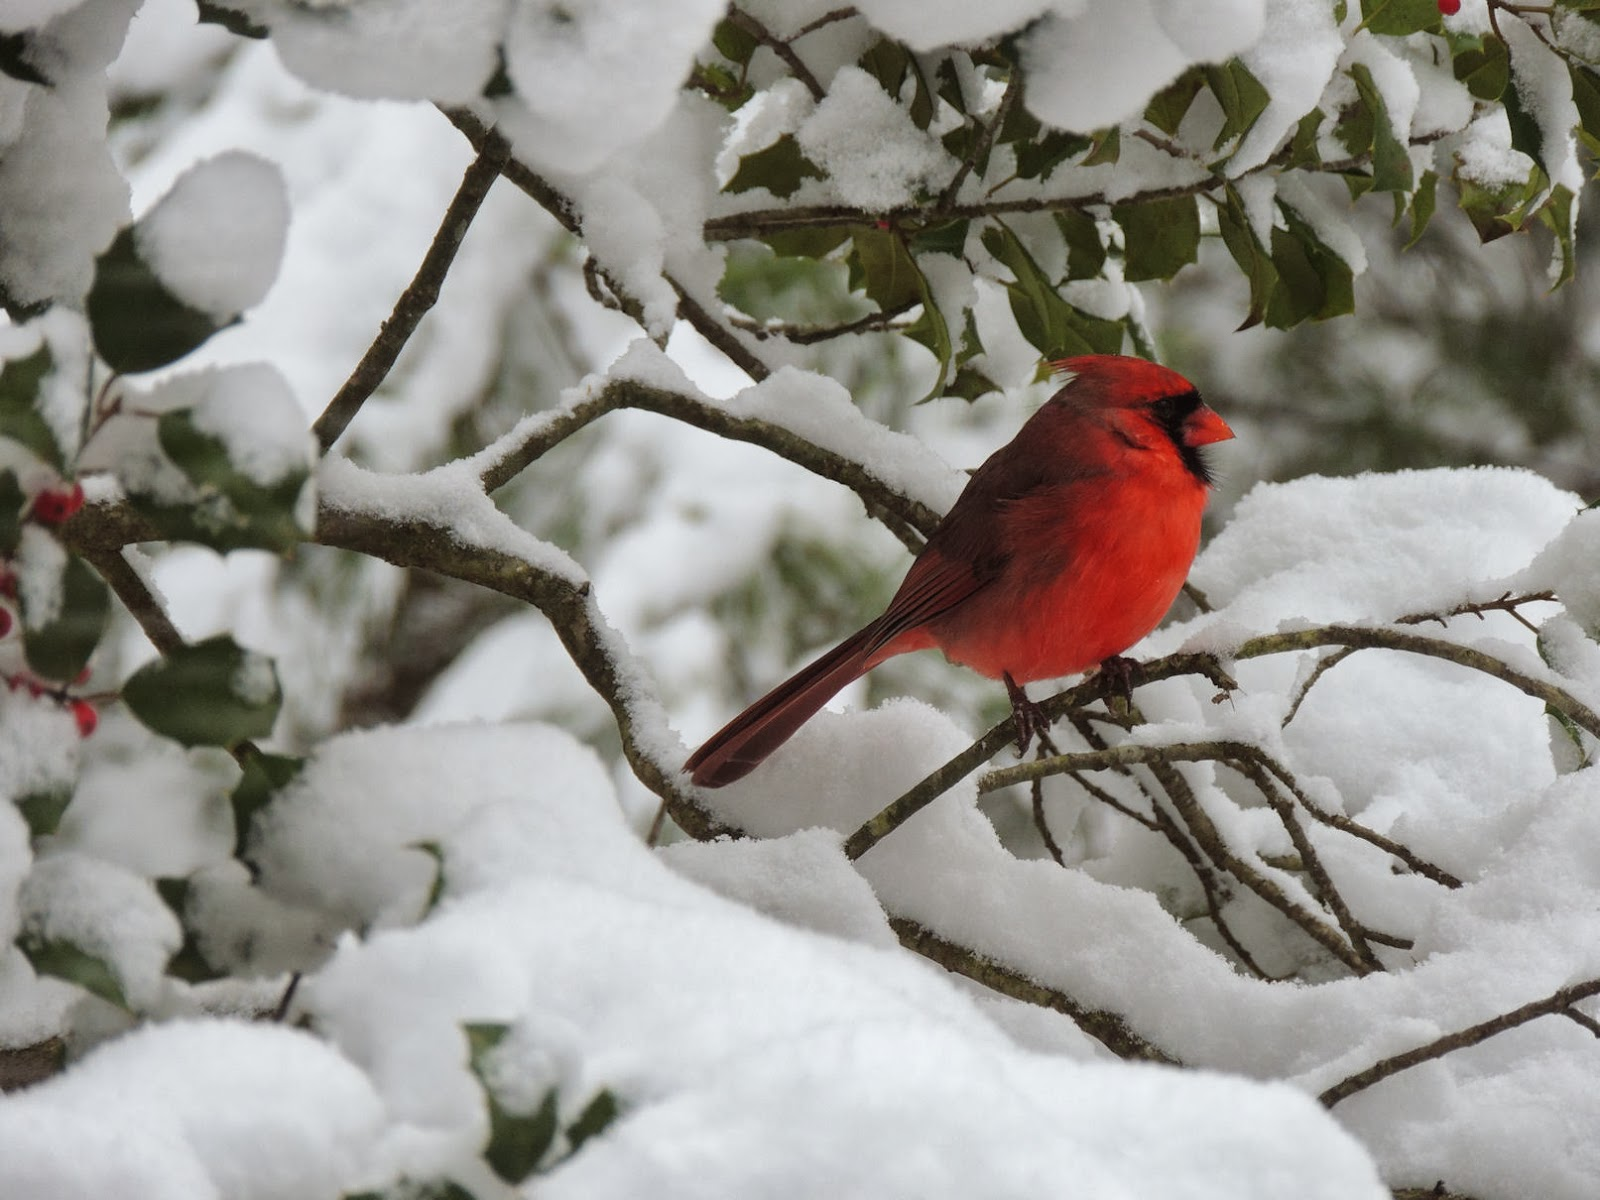 Foulkeways and beyond ii more snow - Pictures of cardinals in snow ...